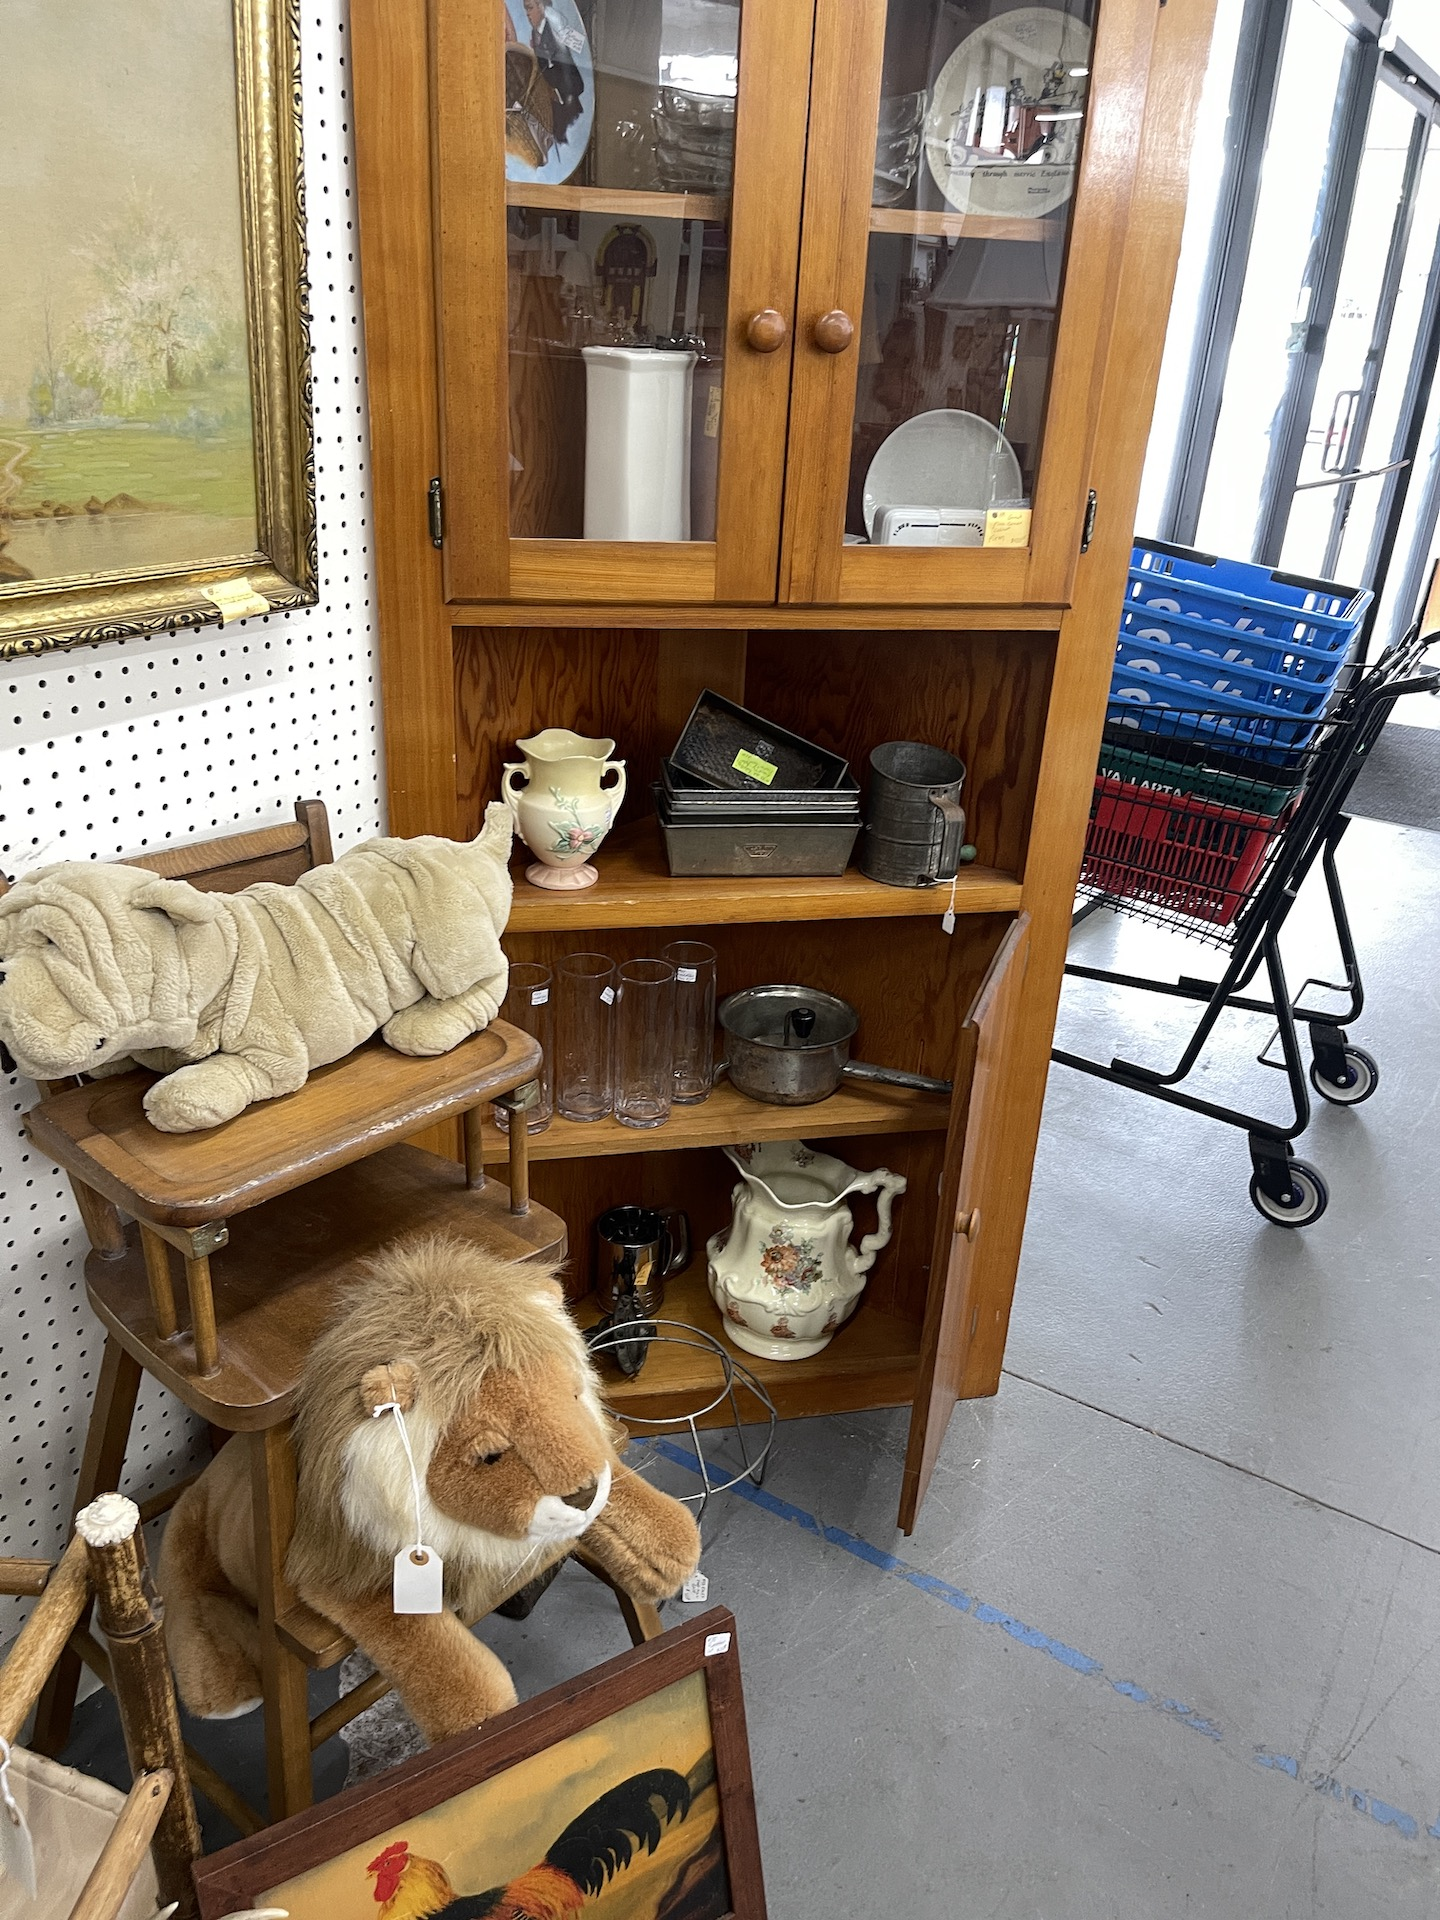 Booth-lion-and-dog